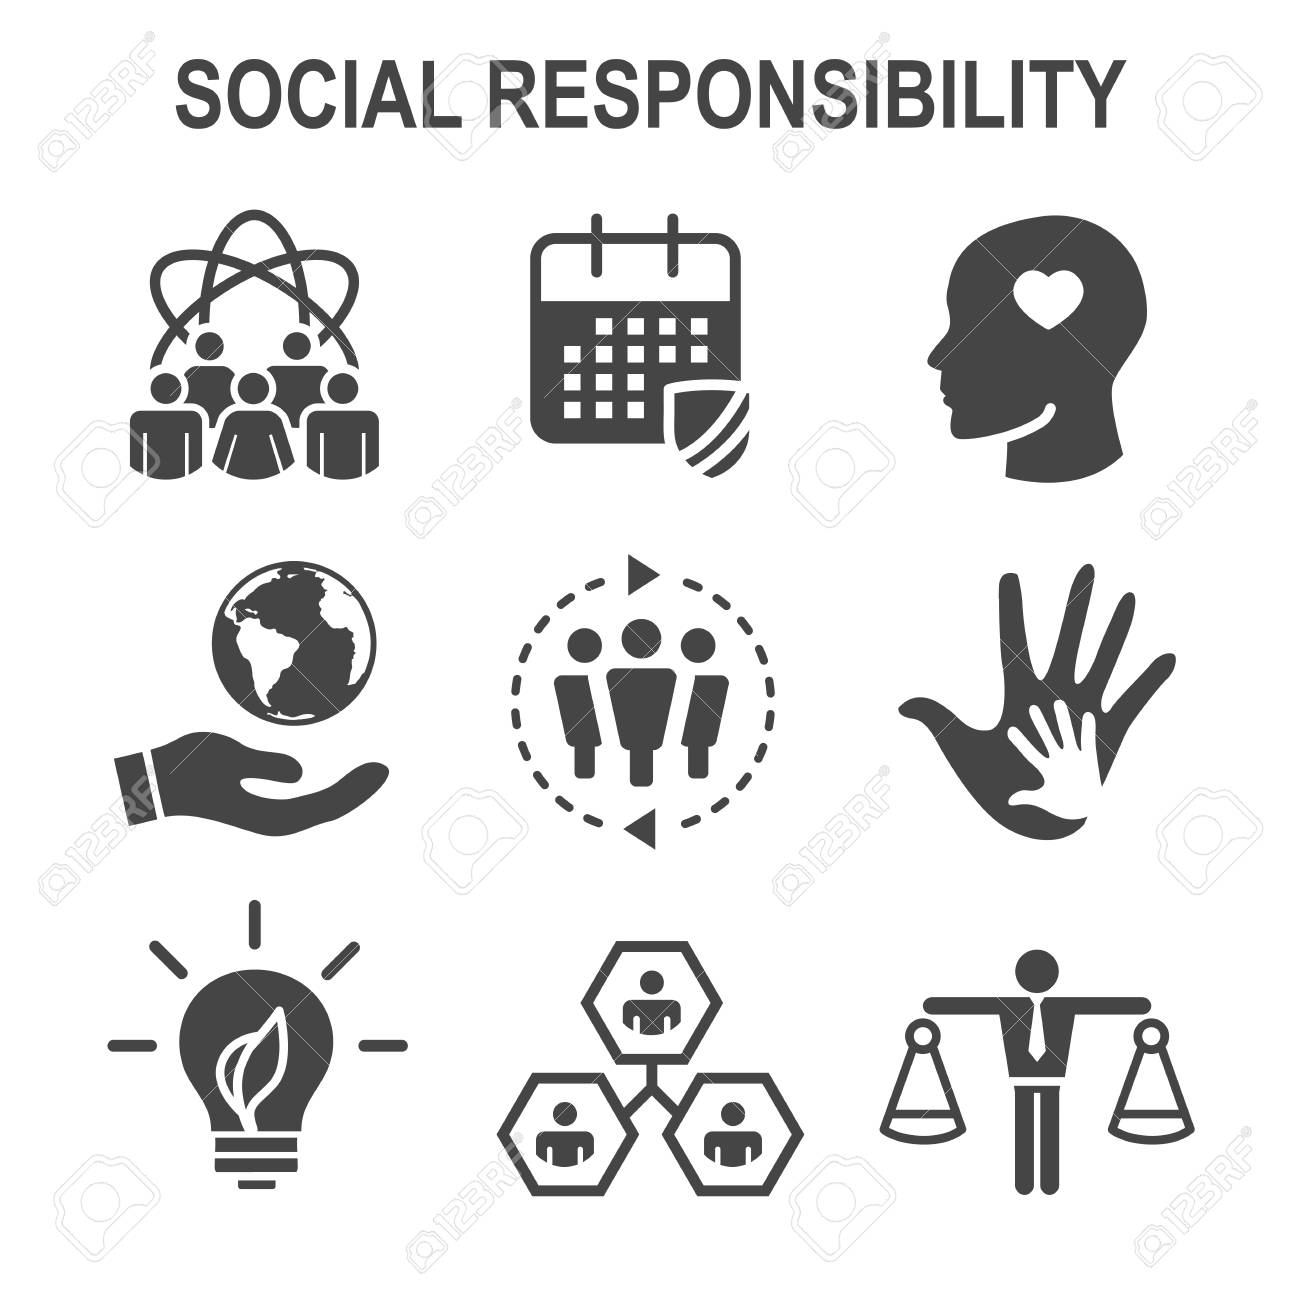 Social Responsibility Solid Icon Set with Honesty, integrity, collaboration, etc - 98317929